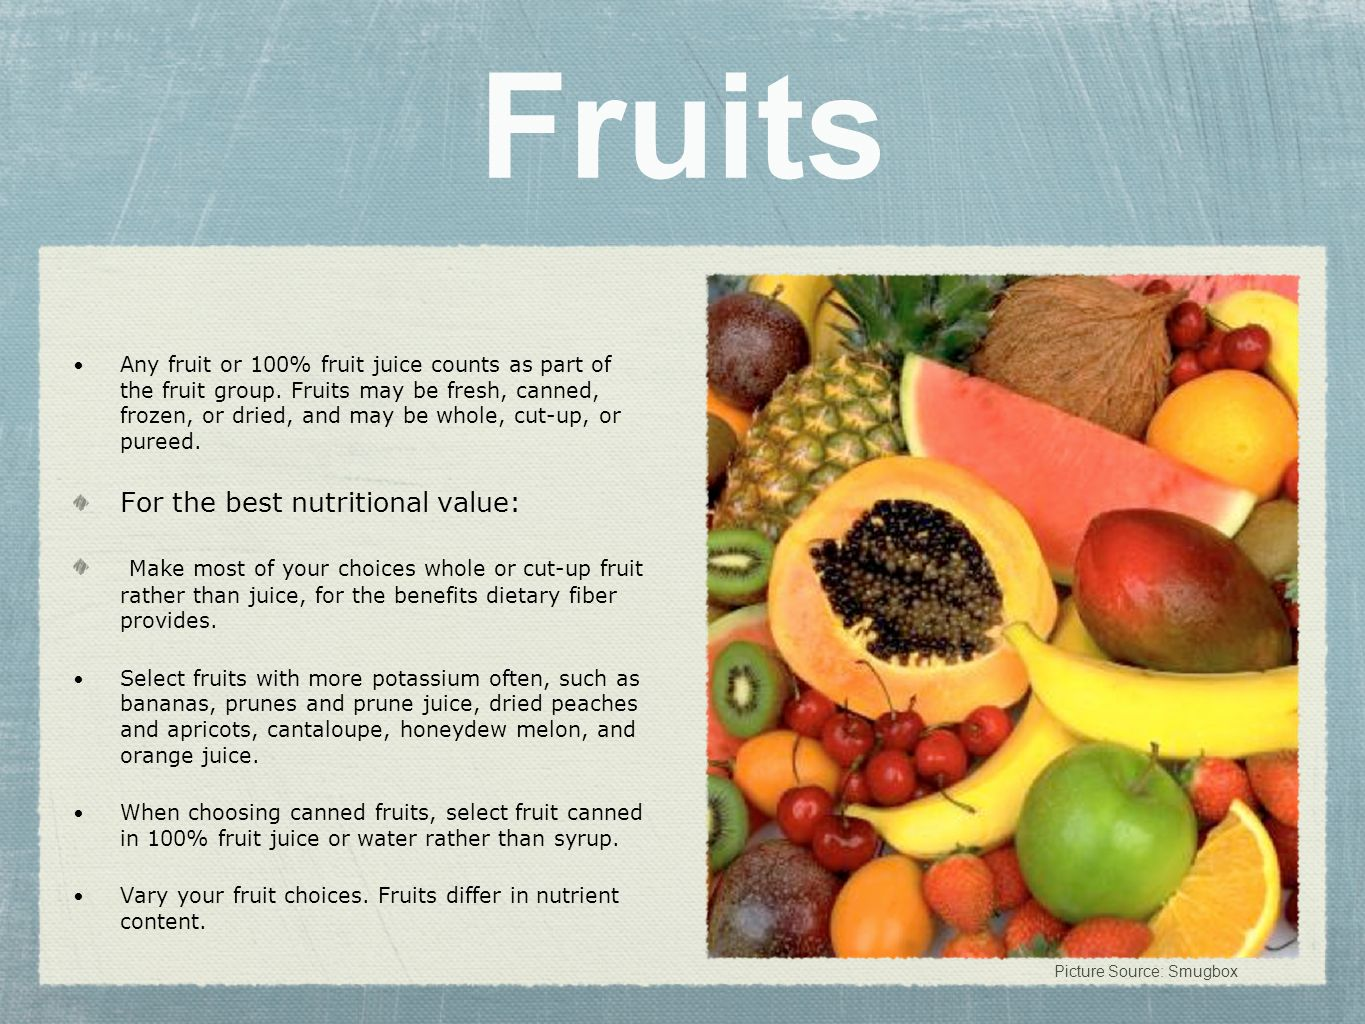 Fruits Any fruit or 100% fruit juice counts as part of the fruit group. Fruits may be fresh, canned, frozen, or dried, and may be whole, cut-up, or pu